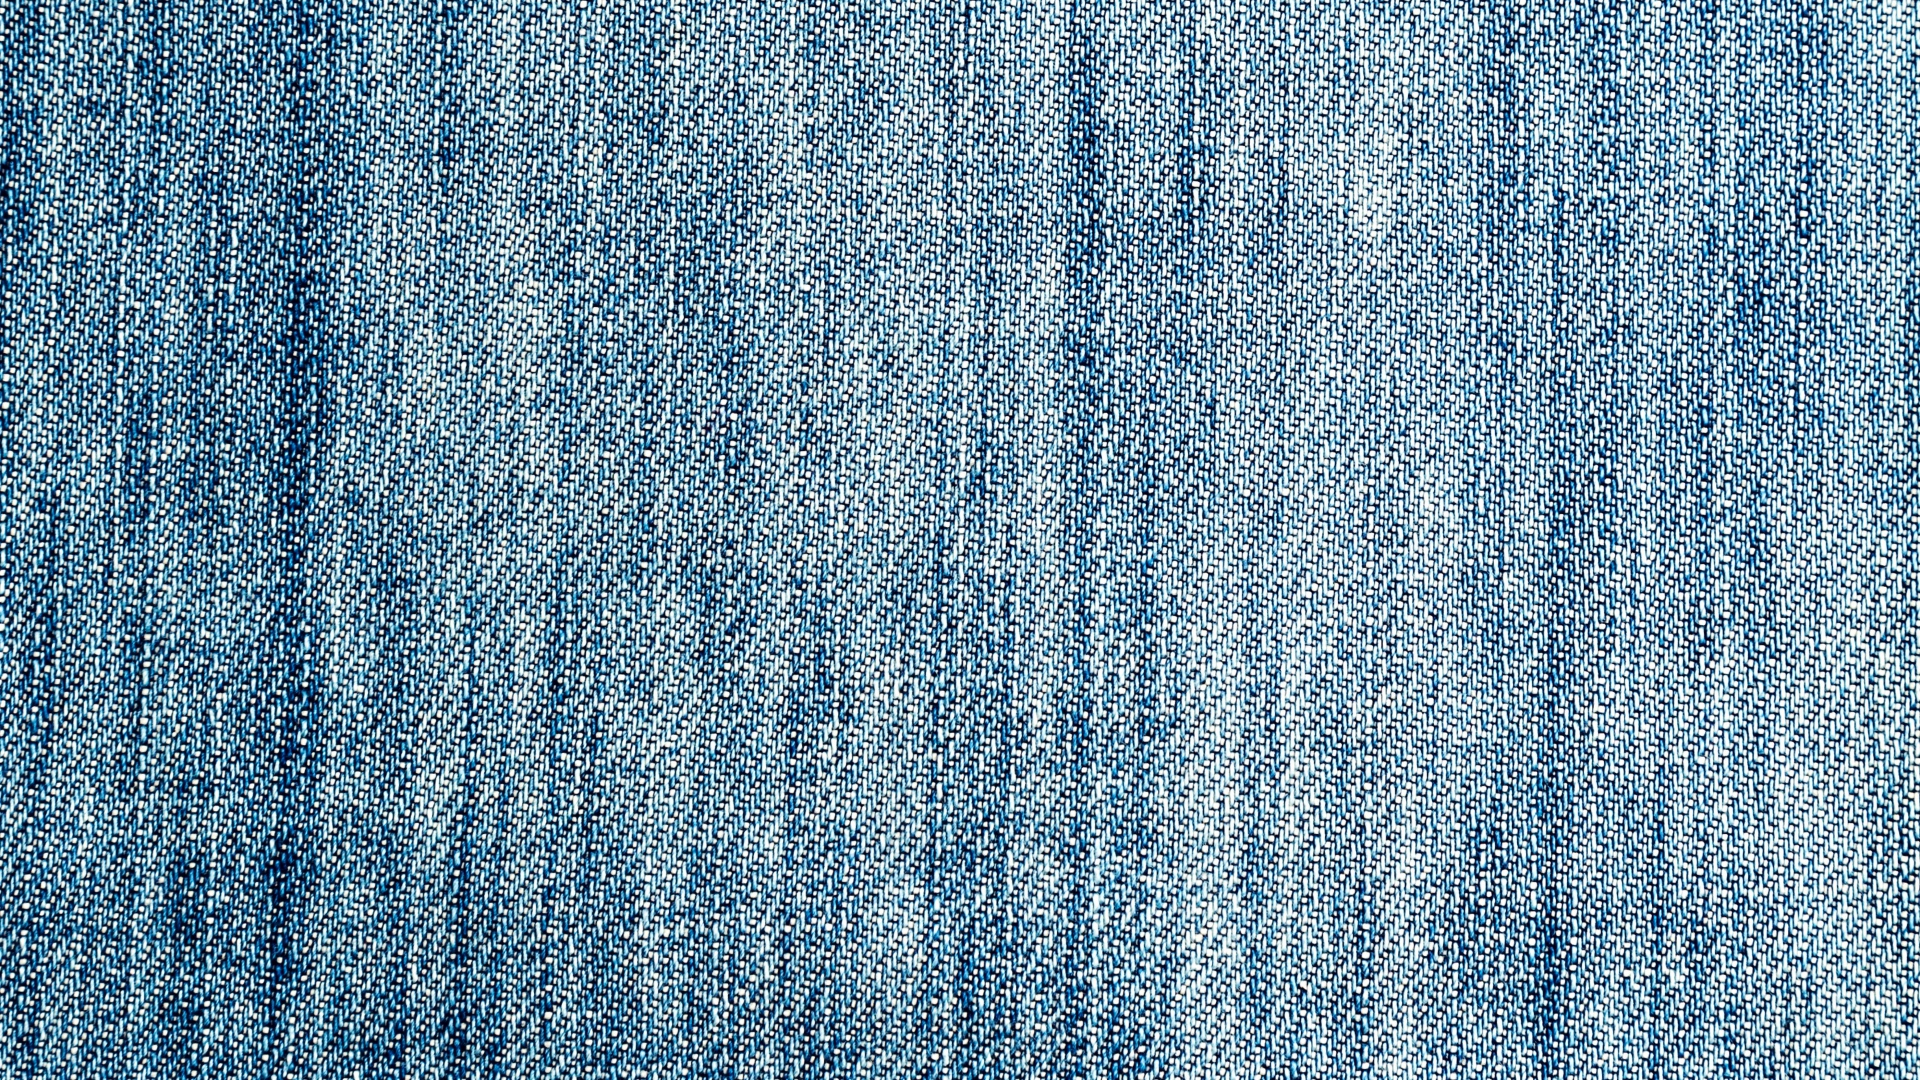 Earnings Disclaimer >> Download Wallpaper 1920x1080 jeans, fabric, thread Full HD 1080p HD Background